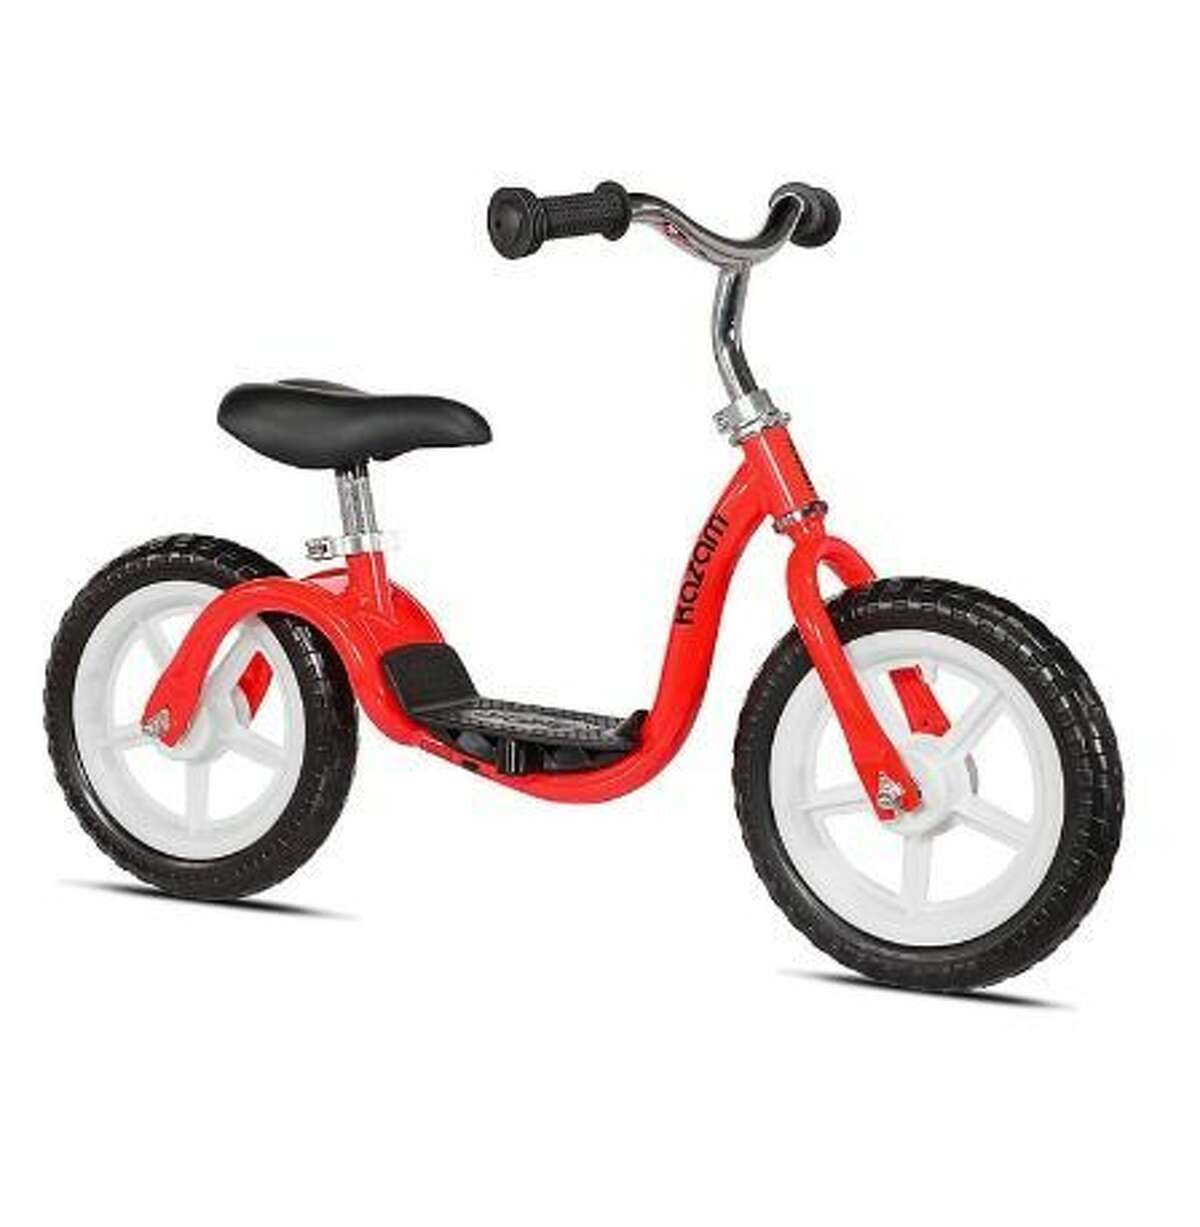 KaZAM Balance Bike: $97.20 Shop Now If you've been hunting around for a balance bike so your kid can breeze down the block without any training wheels, you've probably been seeing the KaZAM brand just about everywhere. This option features a patented step-in footrest design, so your kid will look and feel like he's riding a regular bike. More: These Outdoor Toys Will Turn Your Backyard Into Your Own Personal Summer Camp